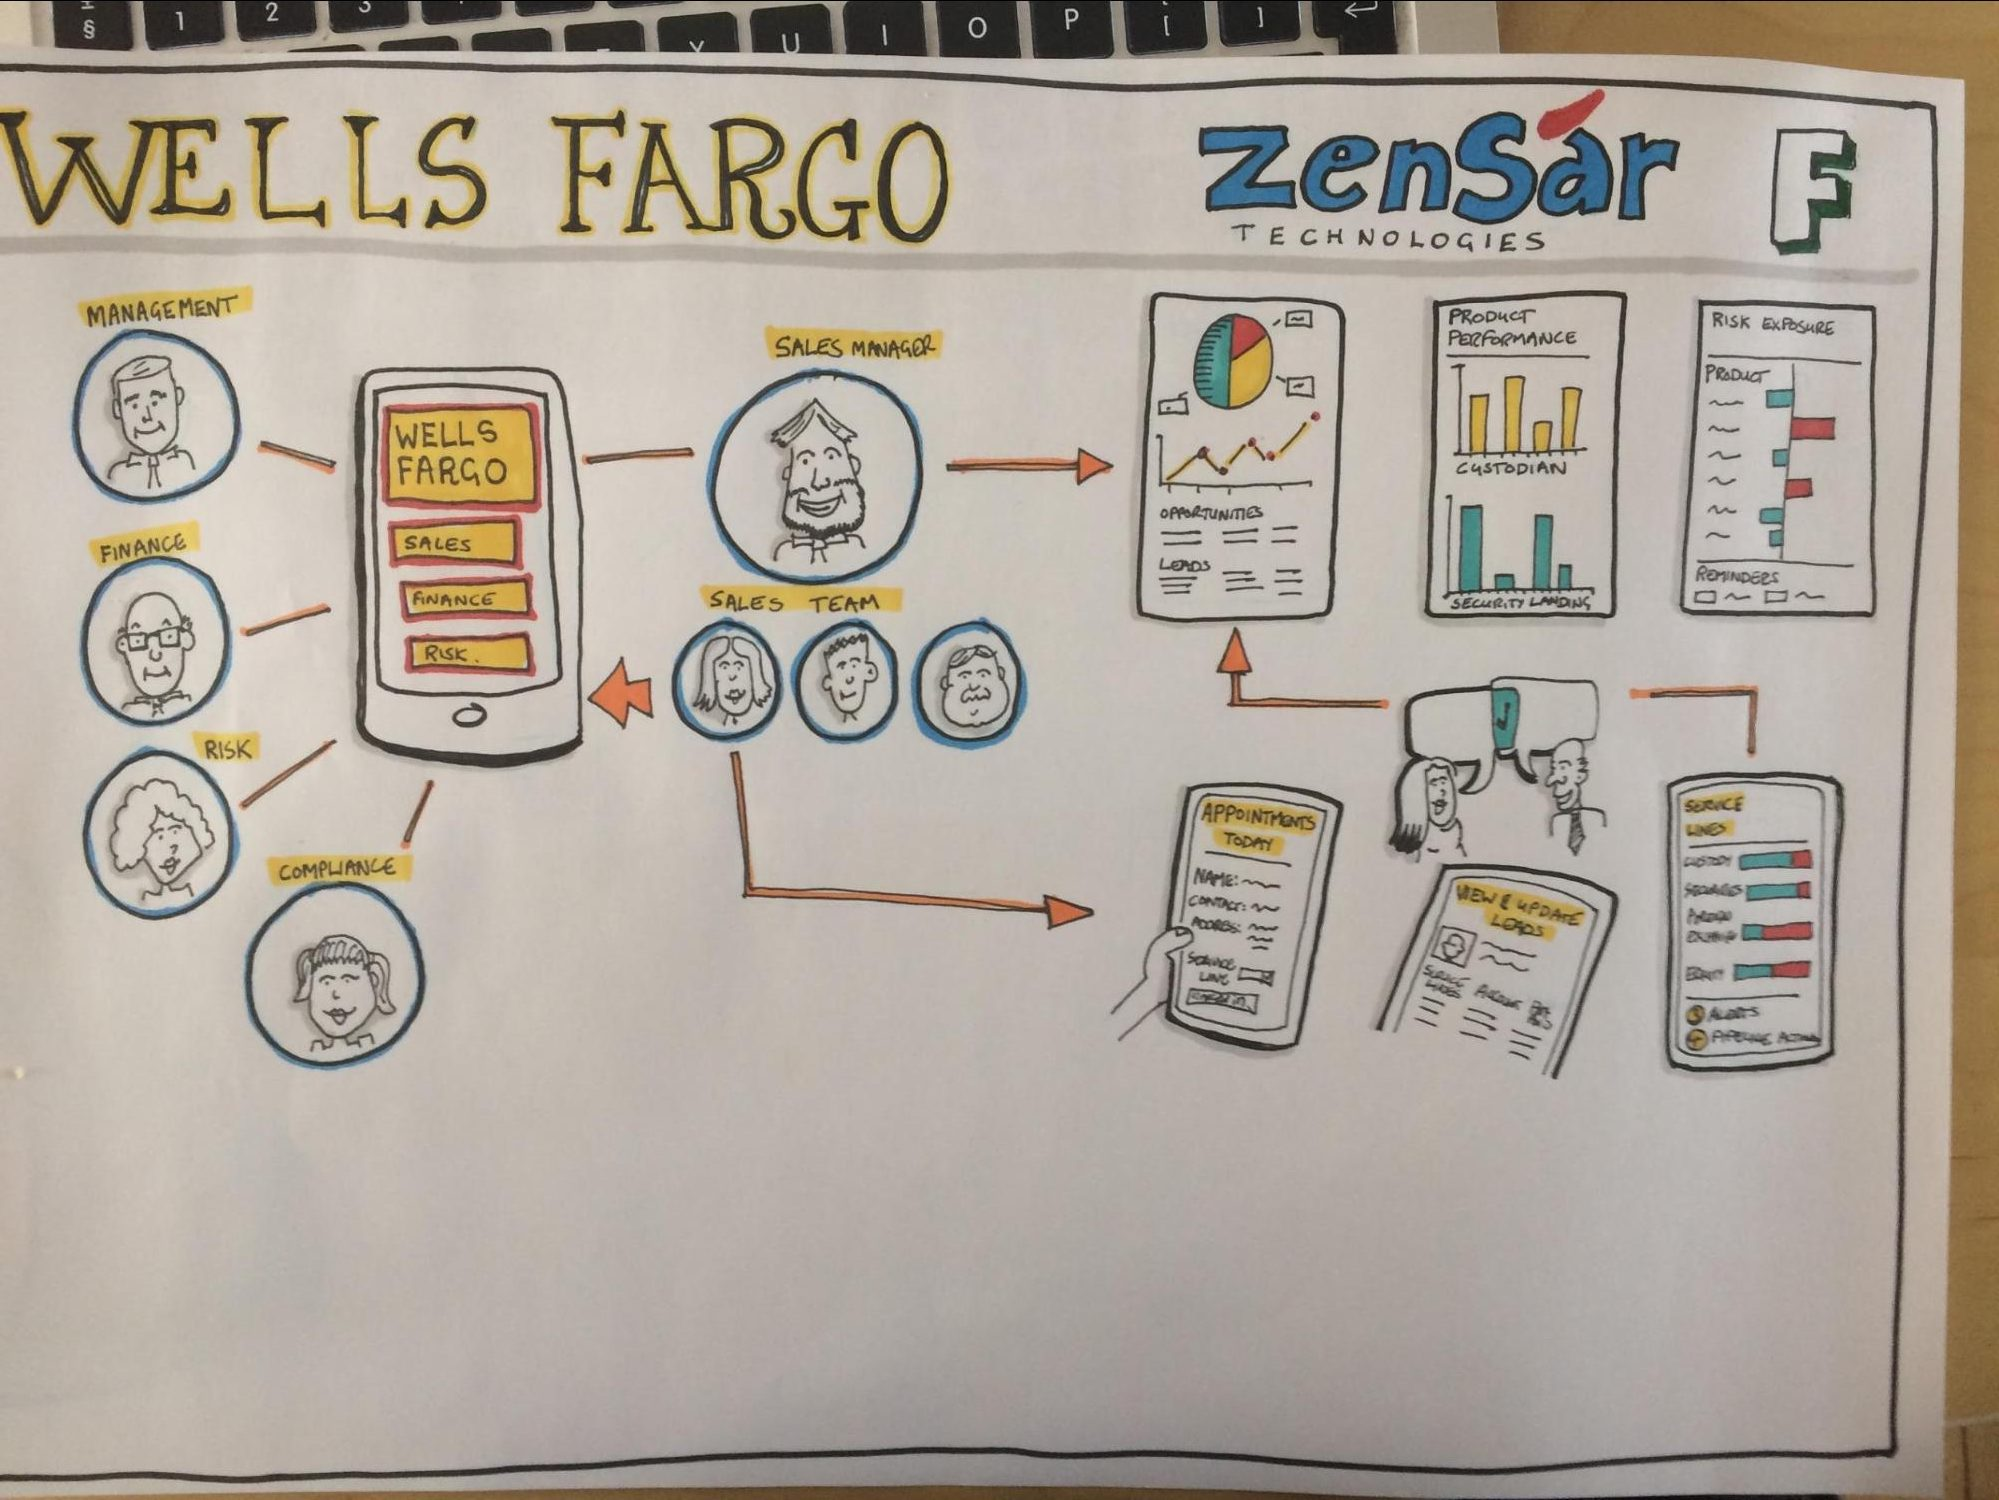 7 Reasons For Sketching In Ux Design Inside Blog Aug Capacity To Draw Schematics Title Bar And Youll Be Once You Have The Sentiments Of Each Stage Journey Process App Sketched Out Use These As Anchors Or Containers More Specific Steps